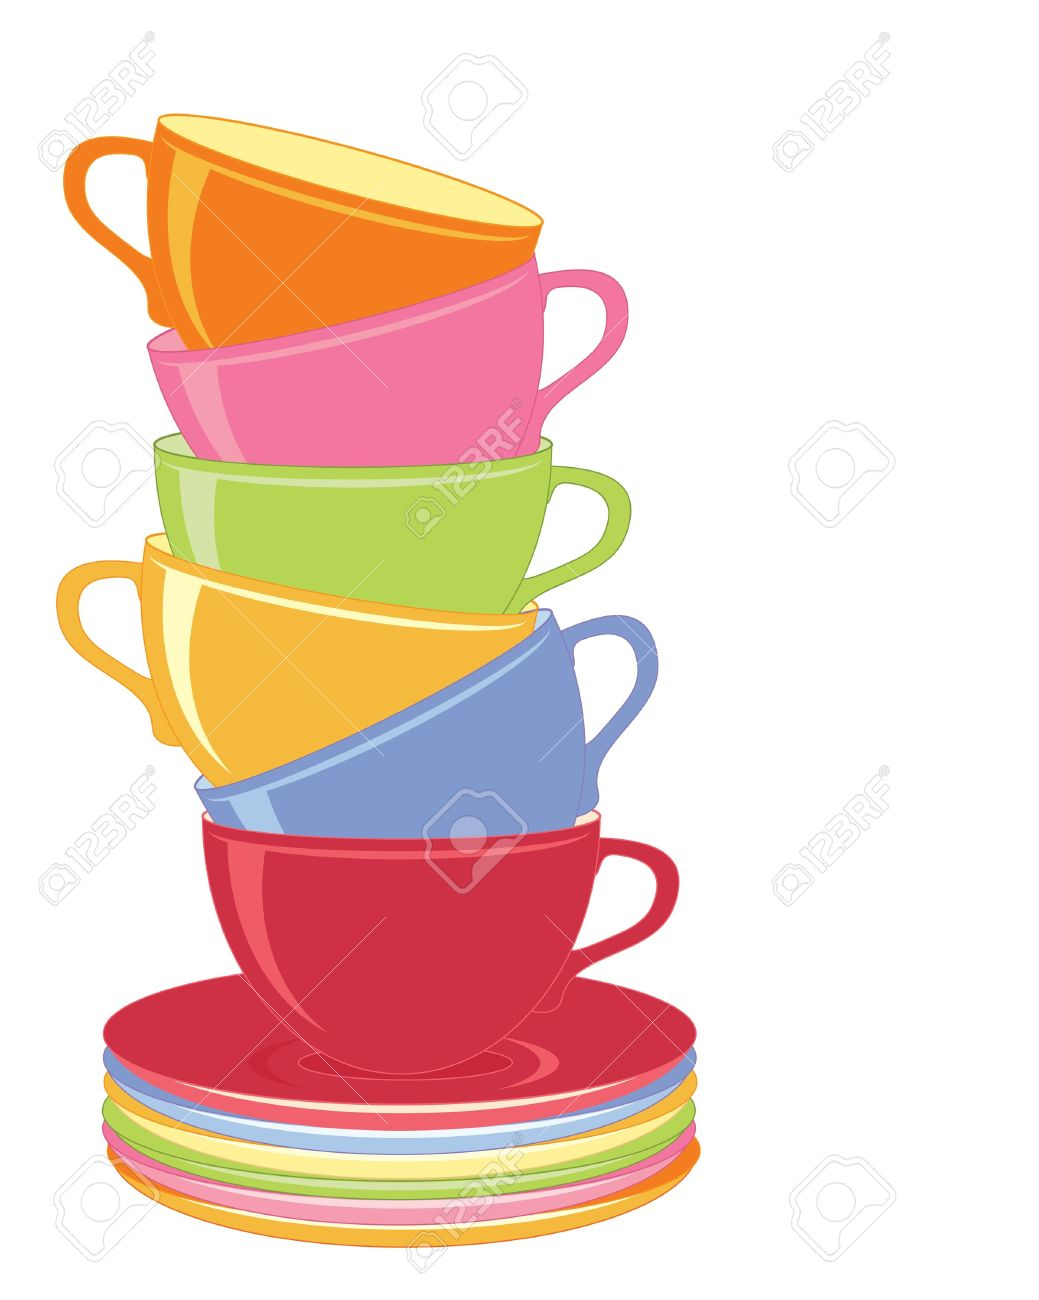 an illustration of a stack of colorful coffee cups on a white background Stock Vector - 12328878